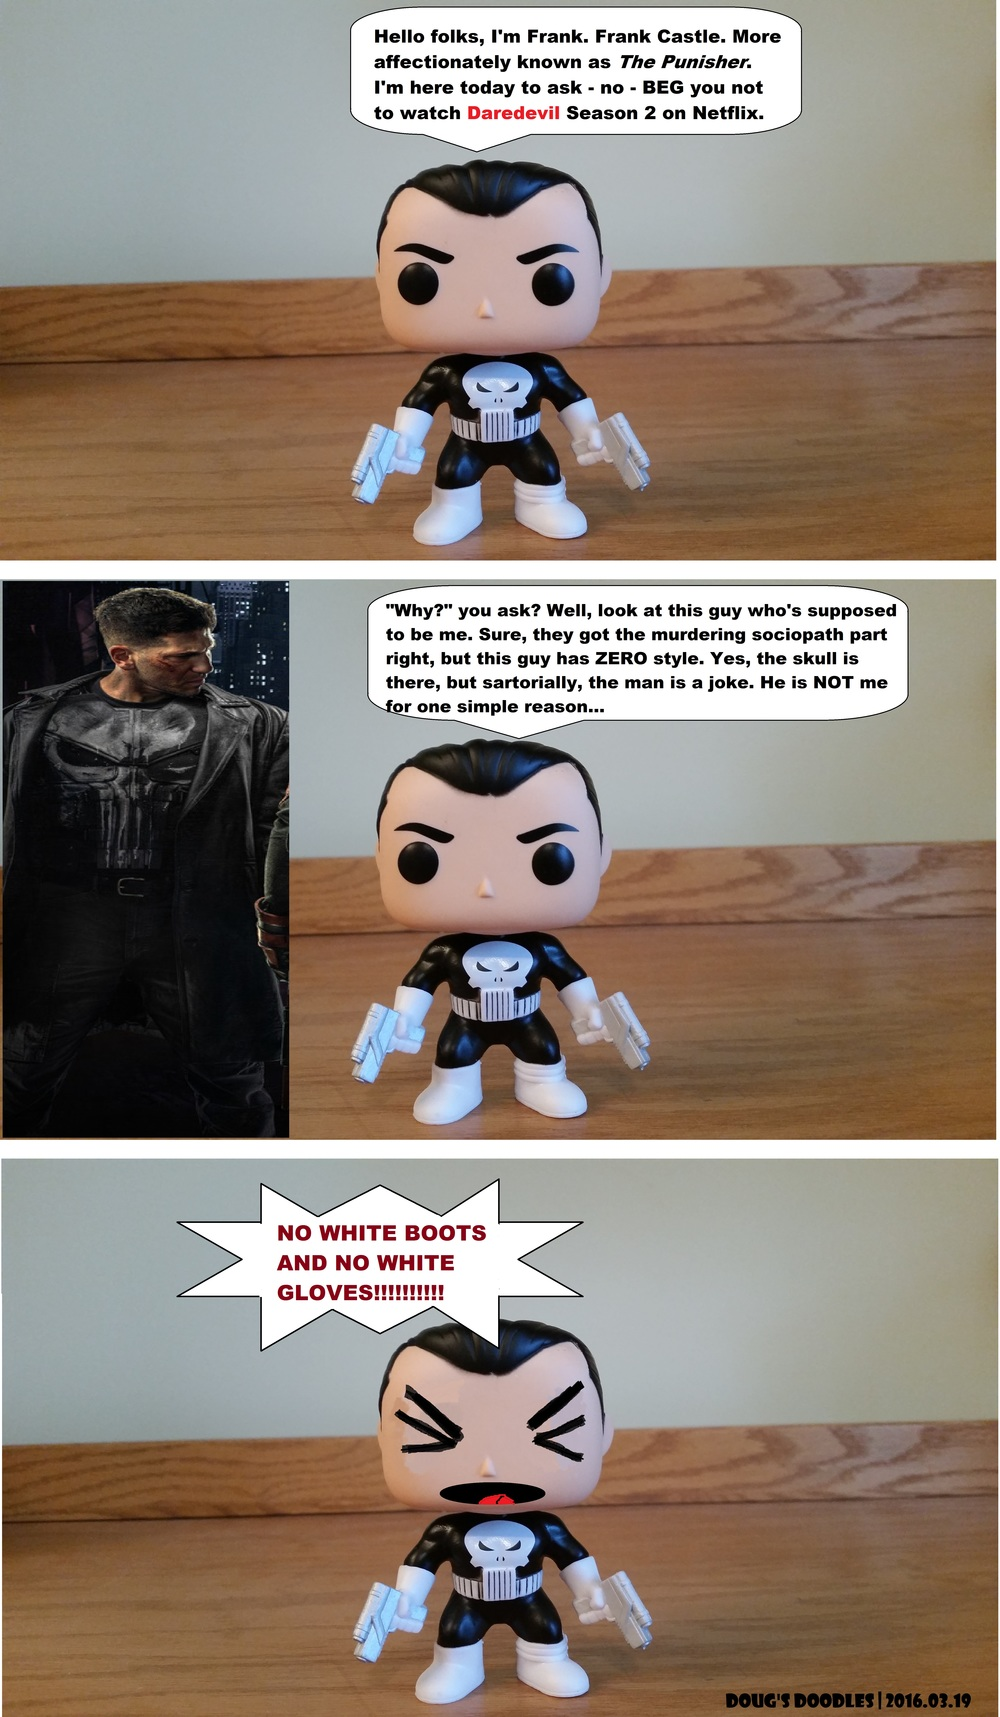 PUNISHER01.JPG